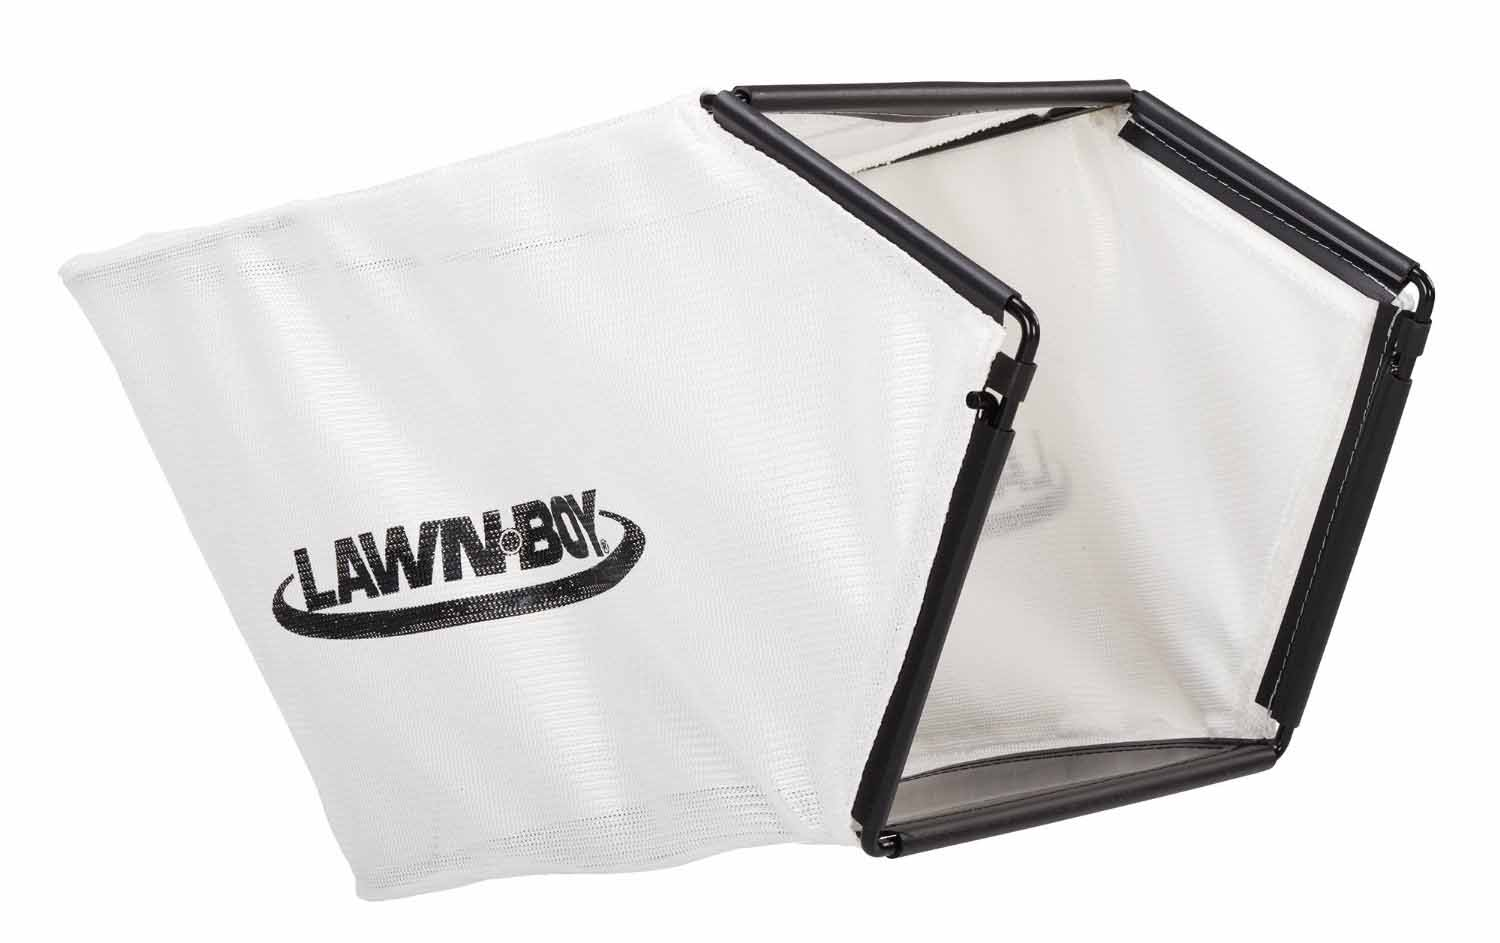 LawnBoy Replacement Side Bag